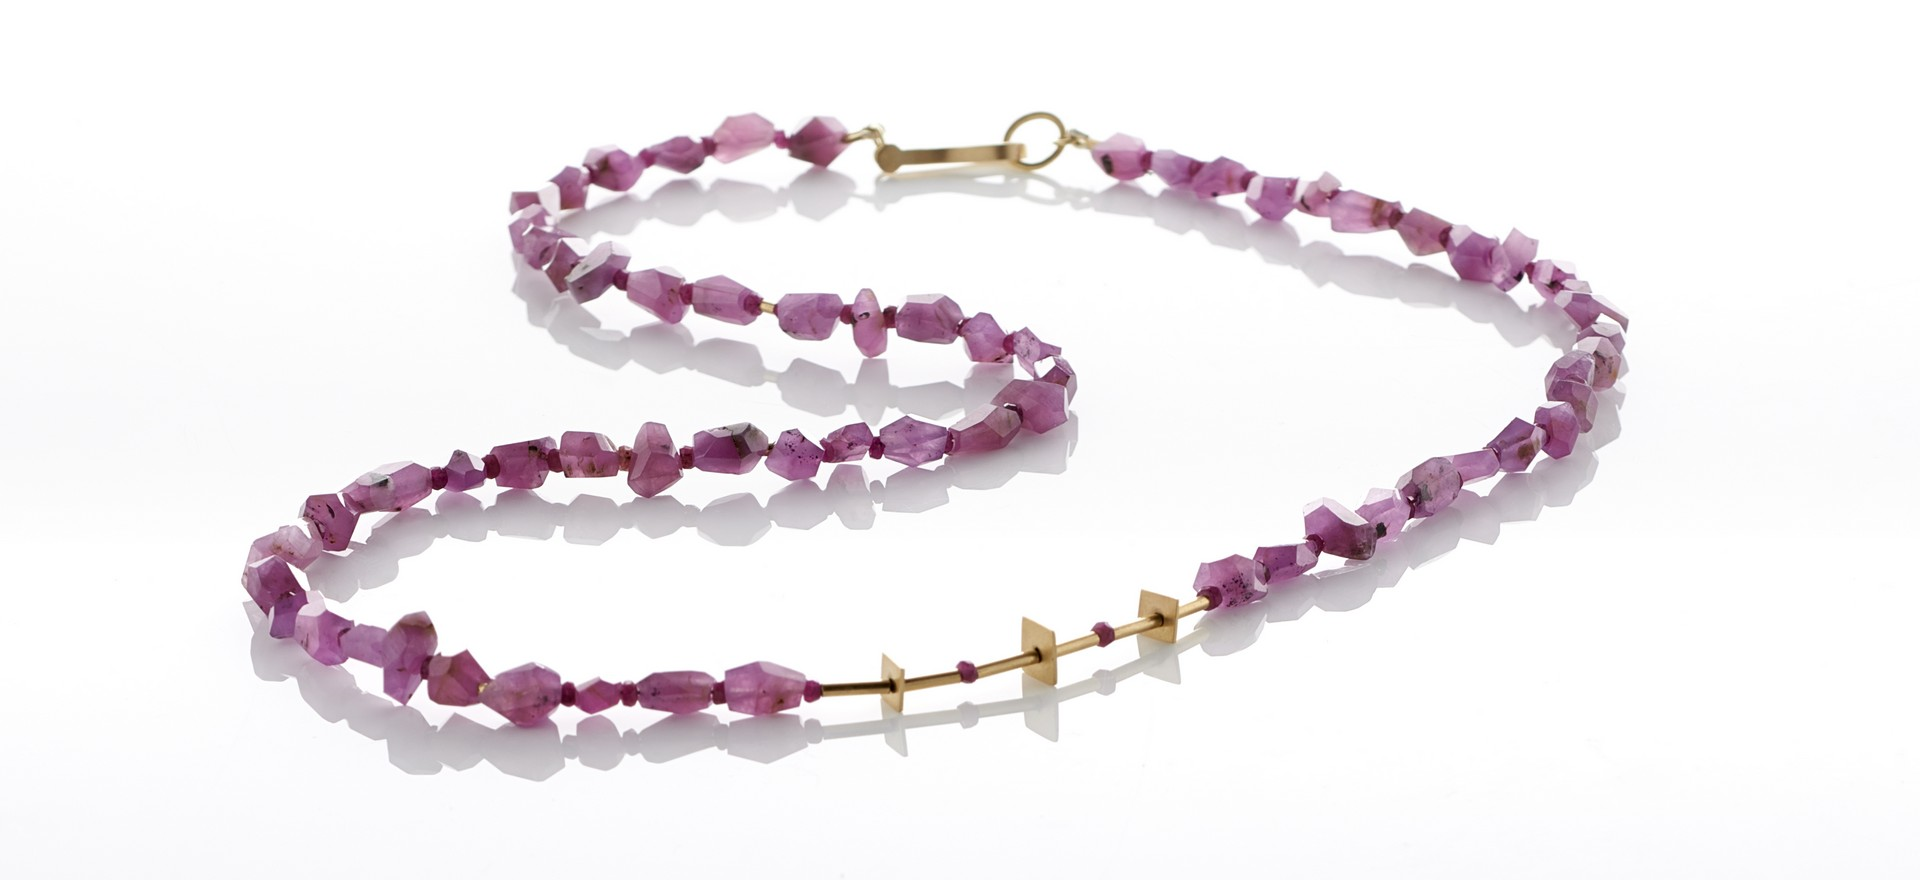 Ruby corundum necklace with 18ct gold features